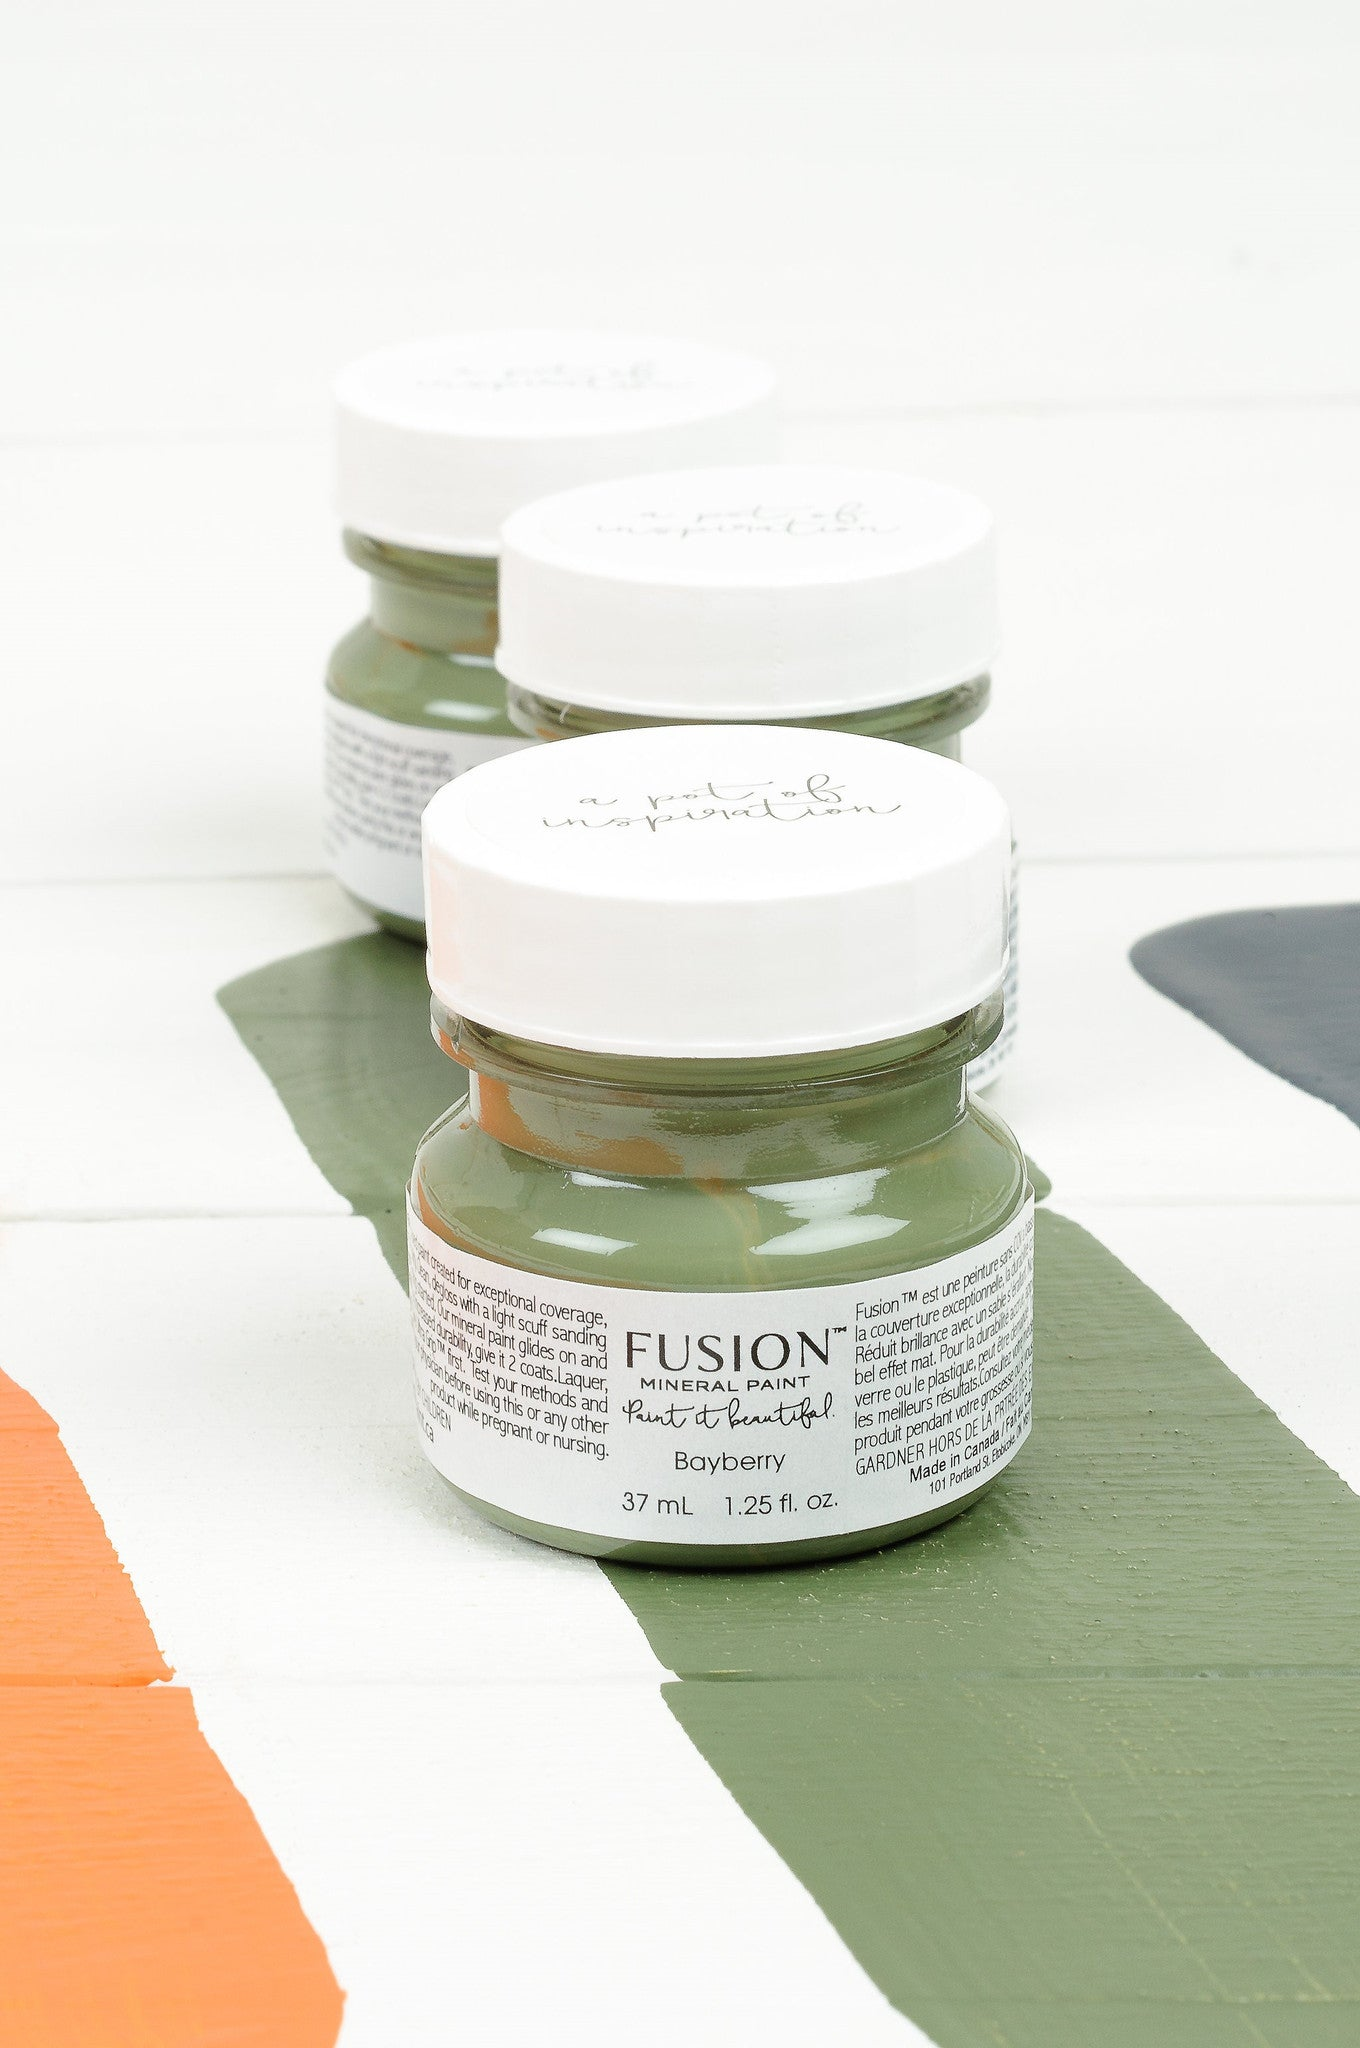 Bayberry - Fusion Mineral Paint - 37ml Tester